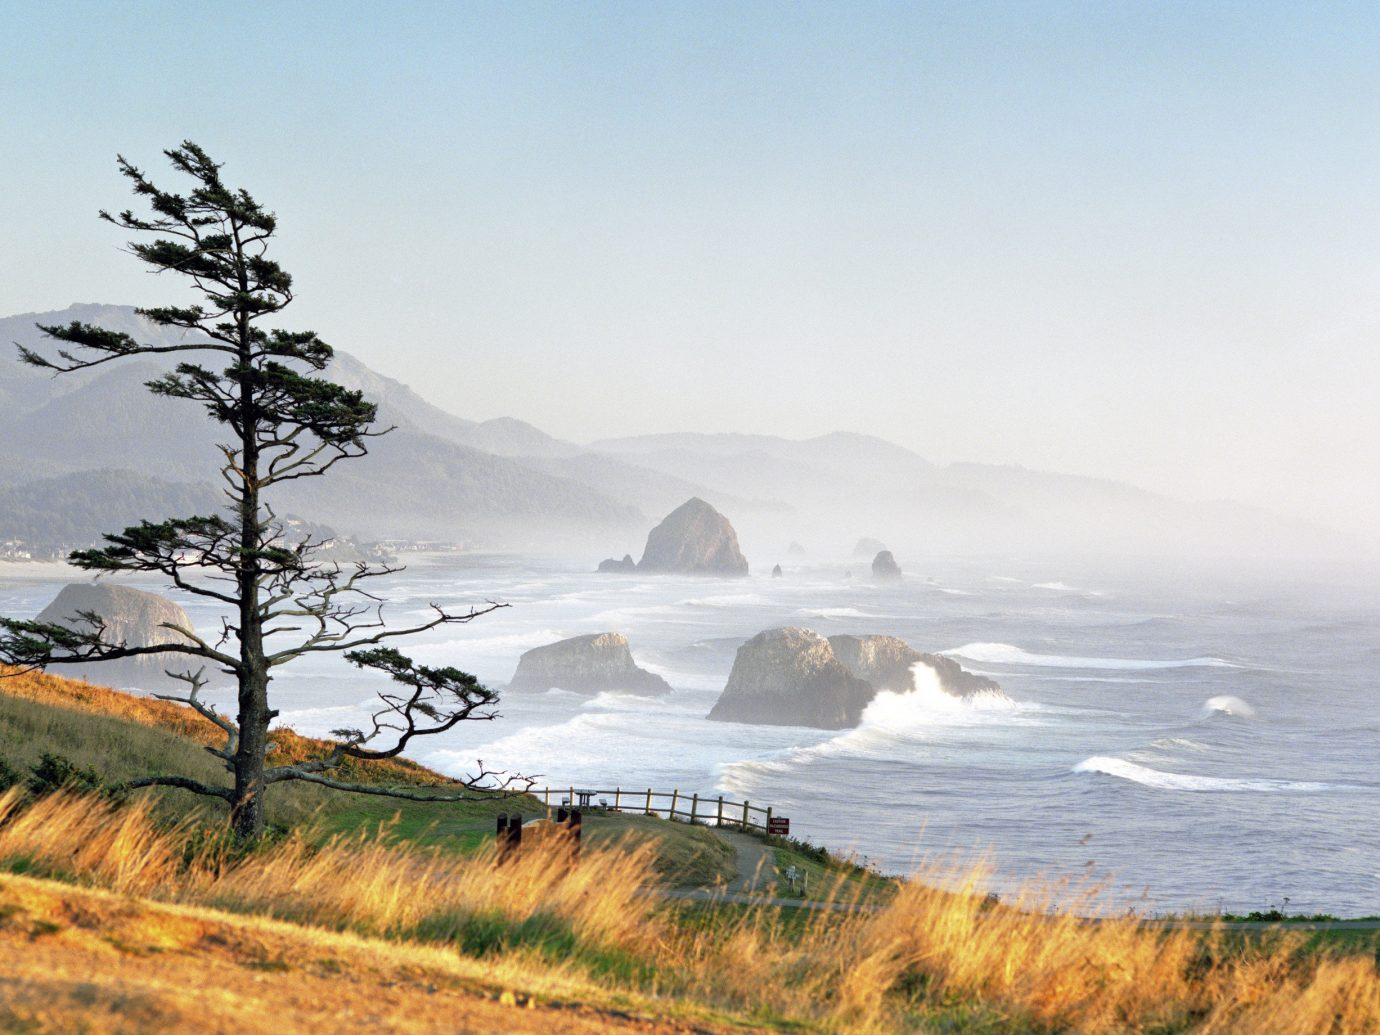 America Beach Trip Ideas West Coast outdoor sky grass Nature mountain atmospheric phenomenon landform wilderness cloud body of water Coast weather shore horizon loch Sea morning hill Ocean landscape Lake mist cliff terrain wave reflection hillside highland